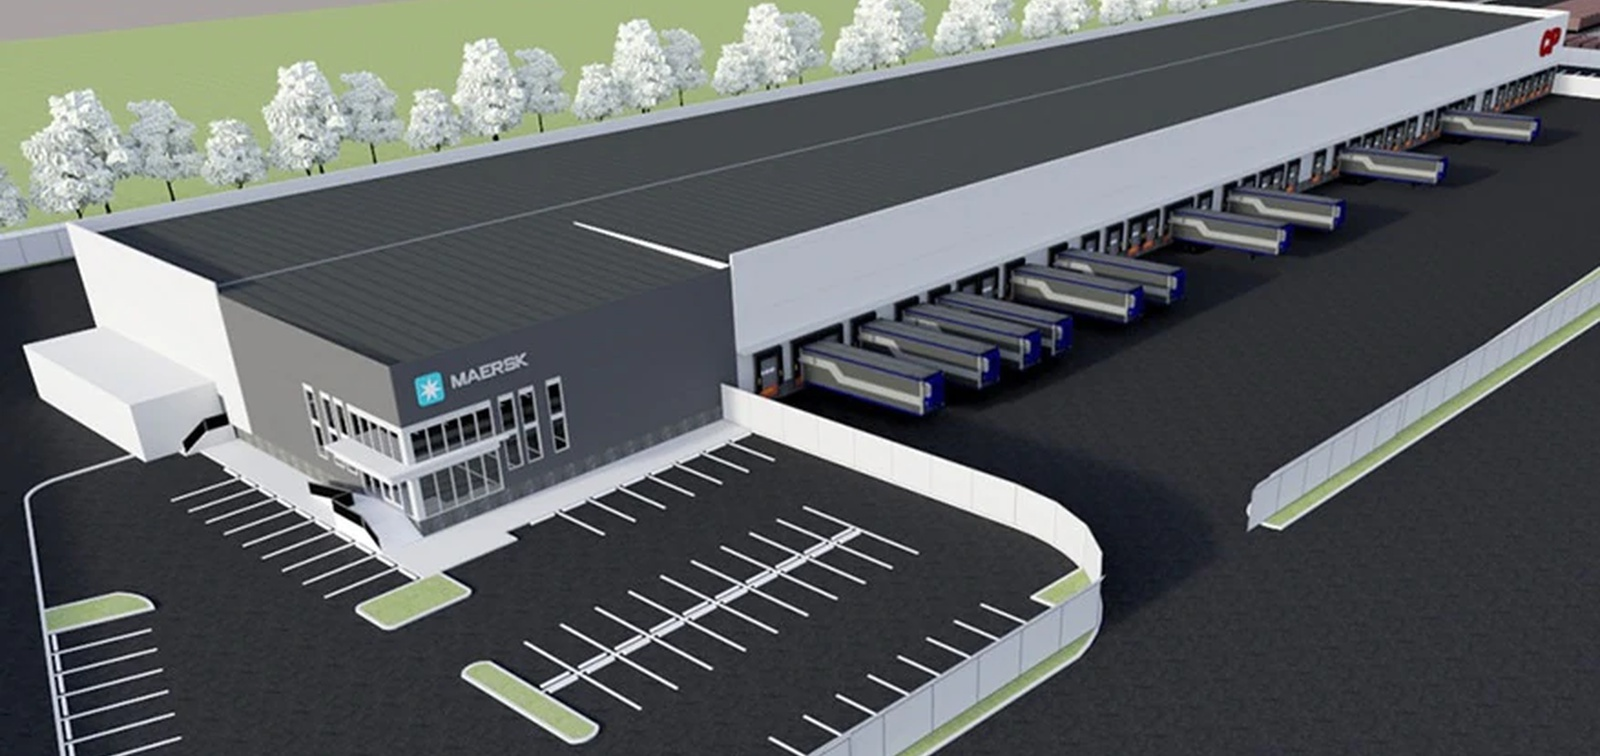 Maersk and Canadian Pacific to build transload, distribution center to take reliance off trucks